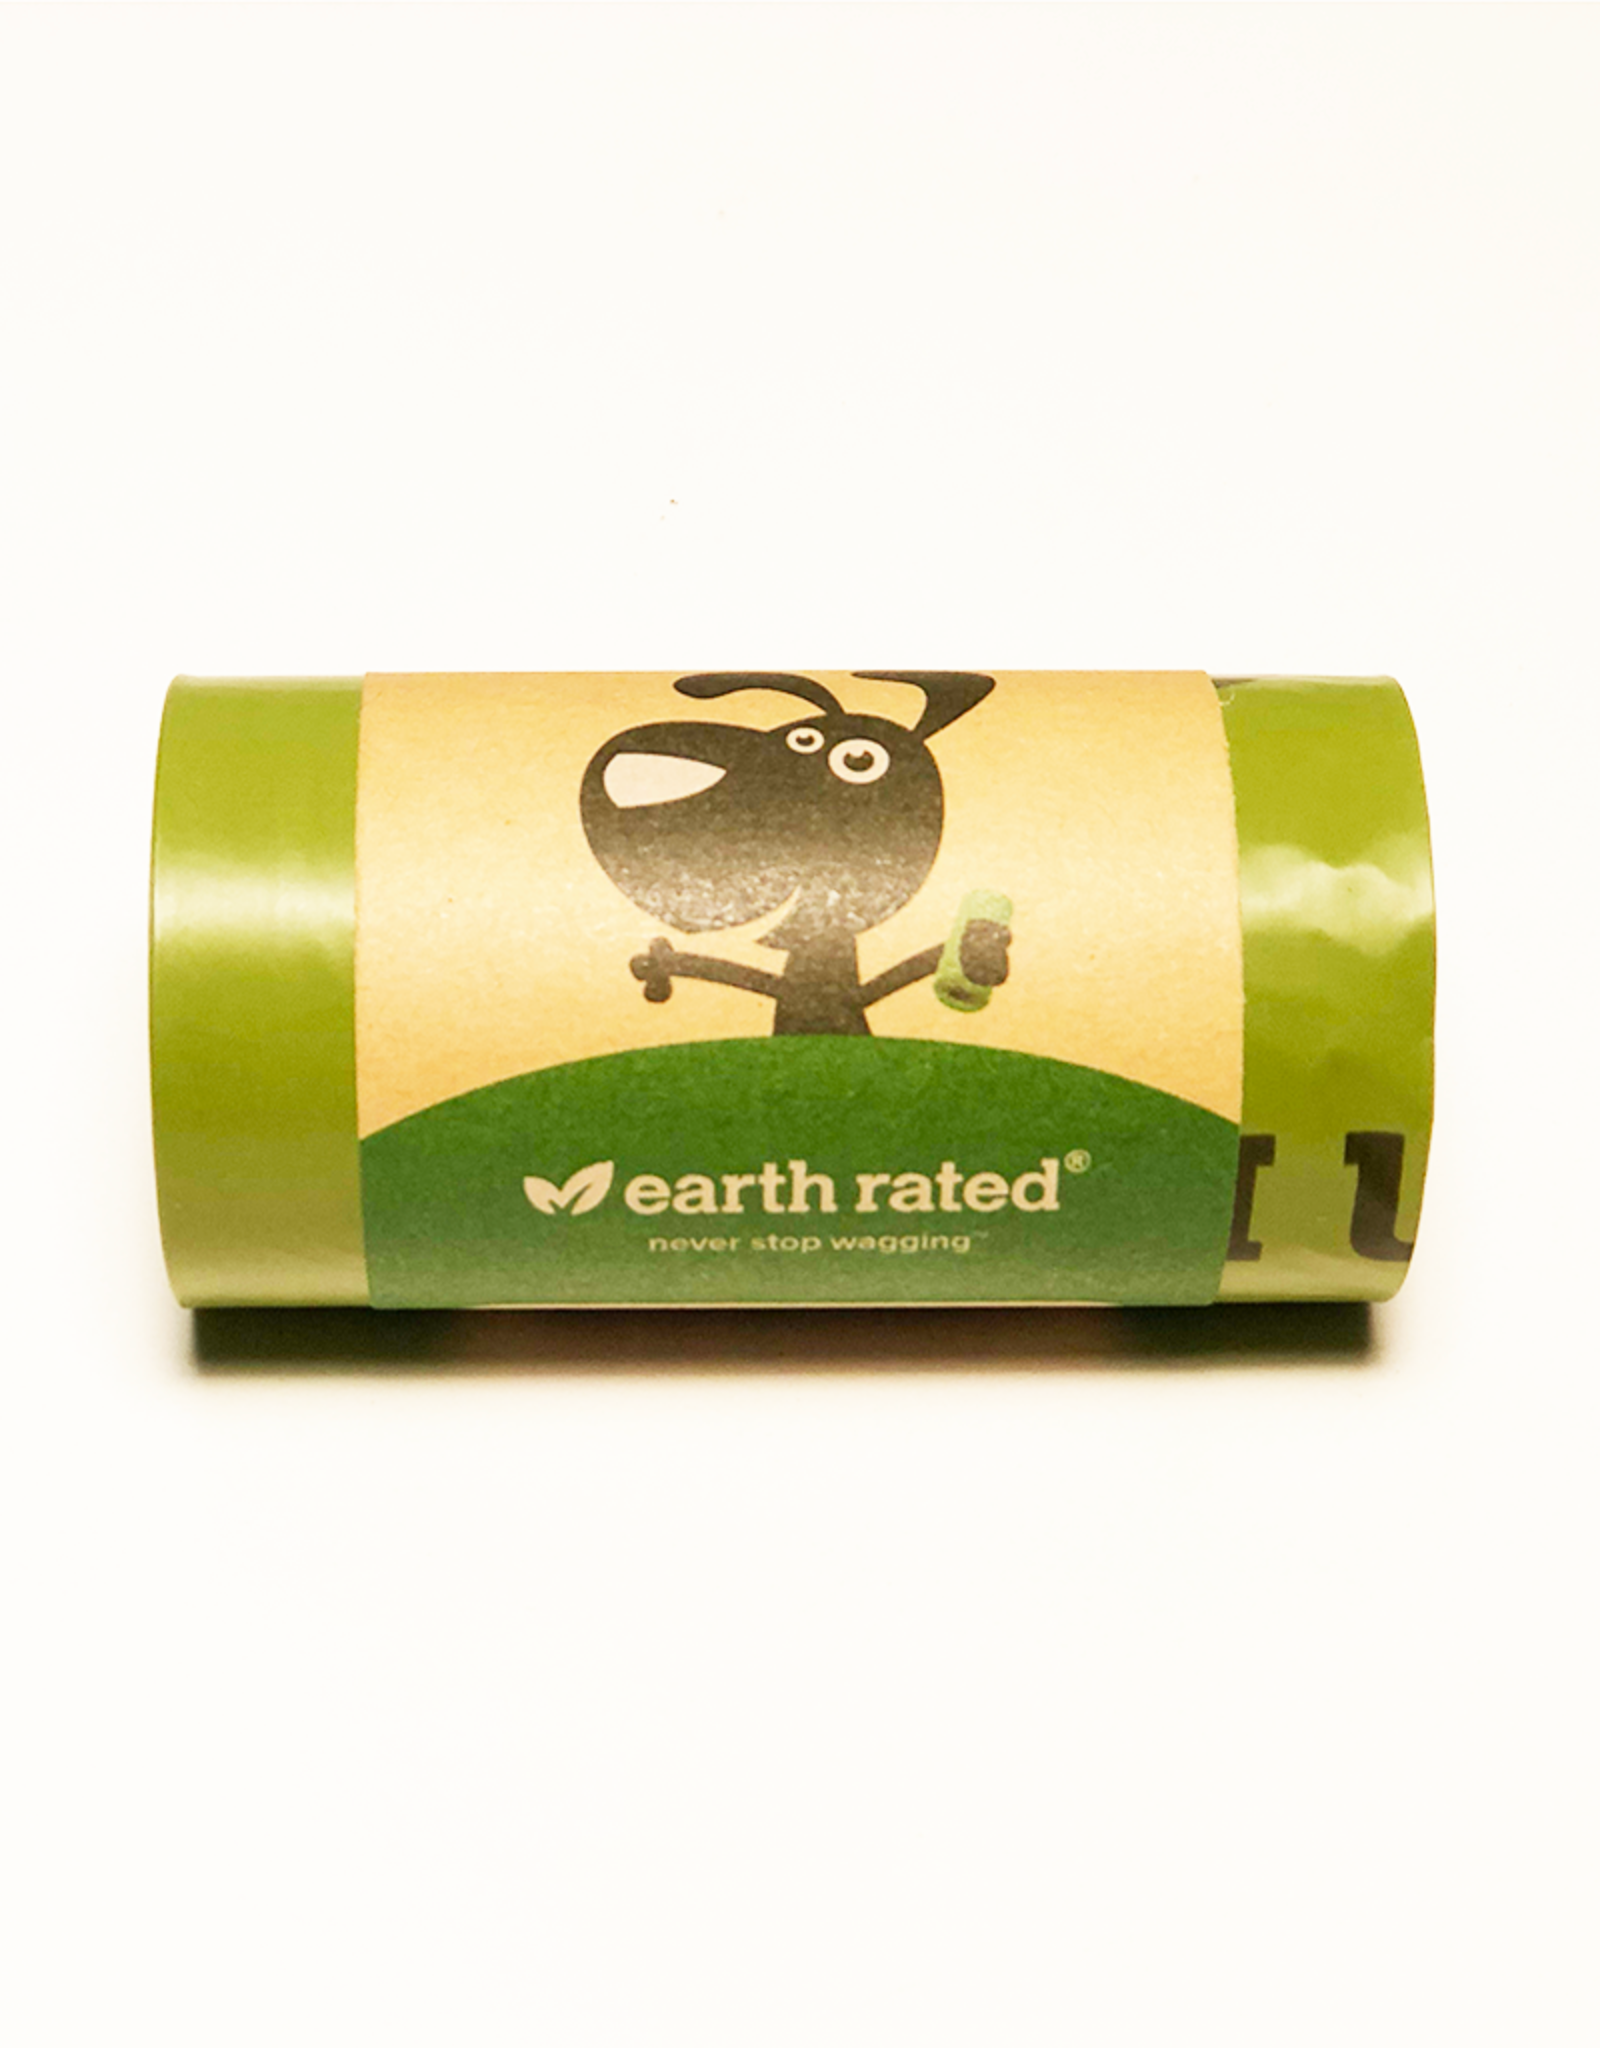 EARTH RATED Earth Rated | Dispenser Refill, 15 standard bags